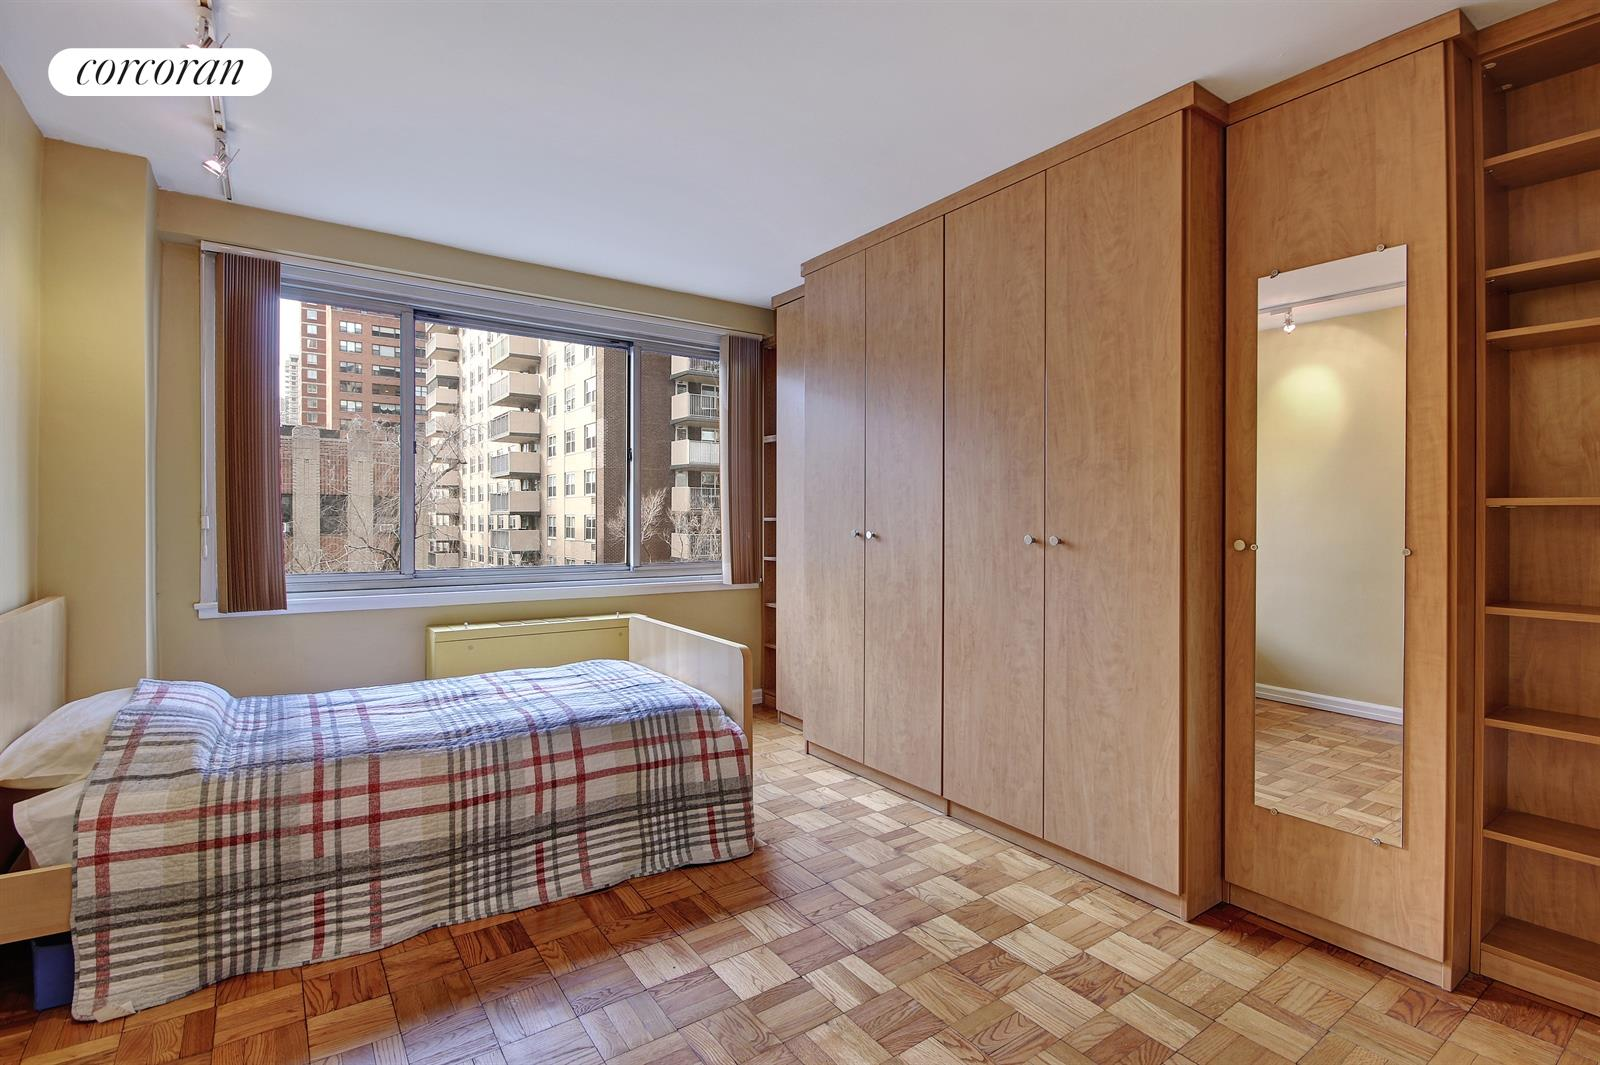 401 East 86th Street, 7C1, Sunny, Spacious Living Room